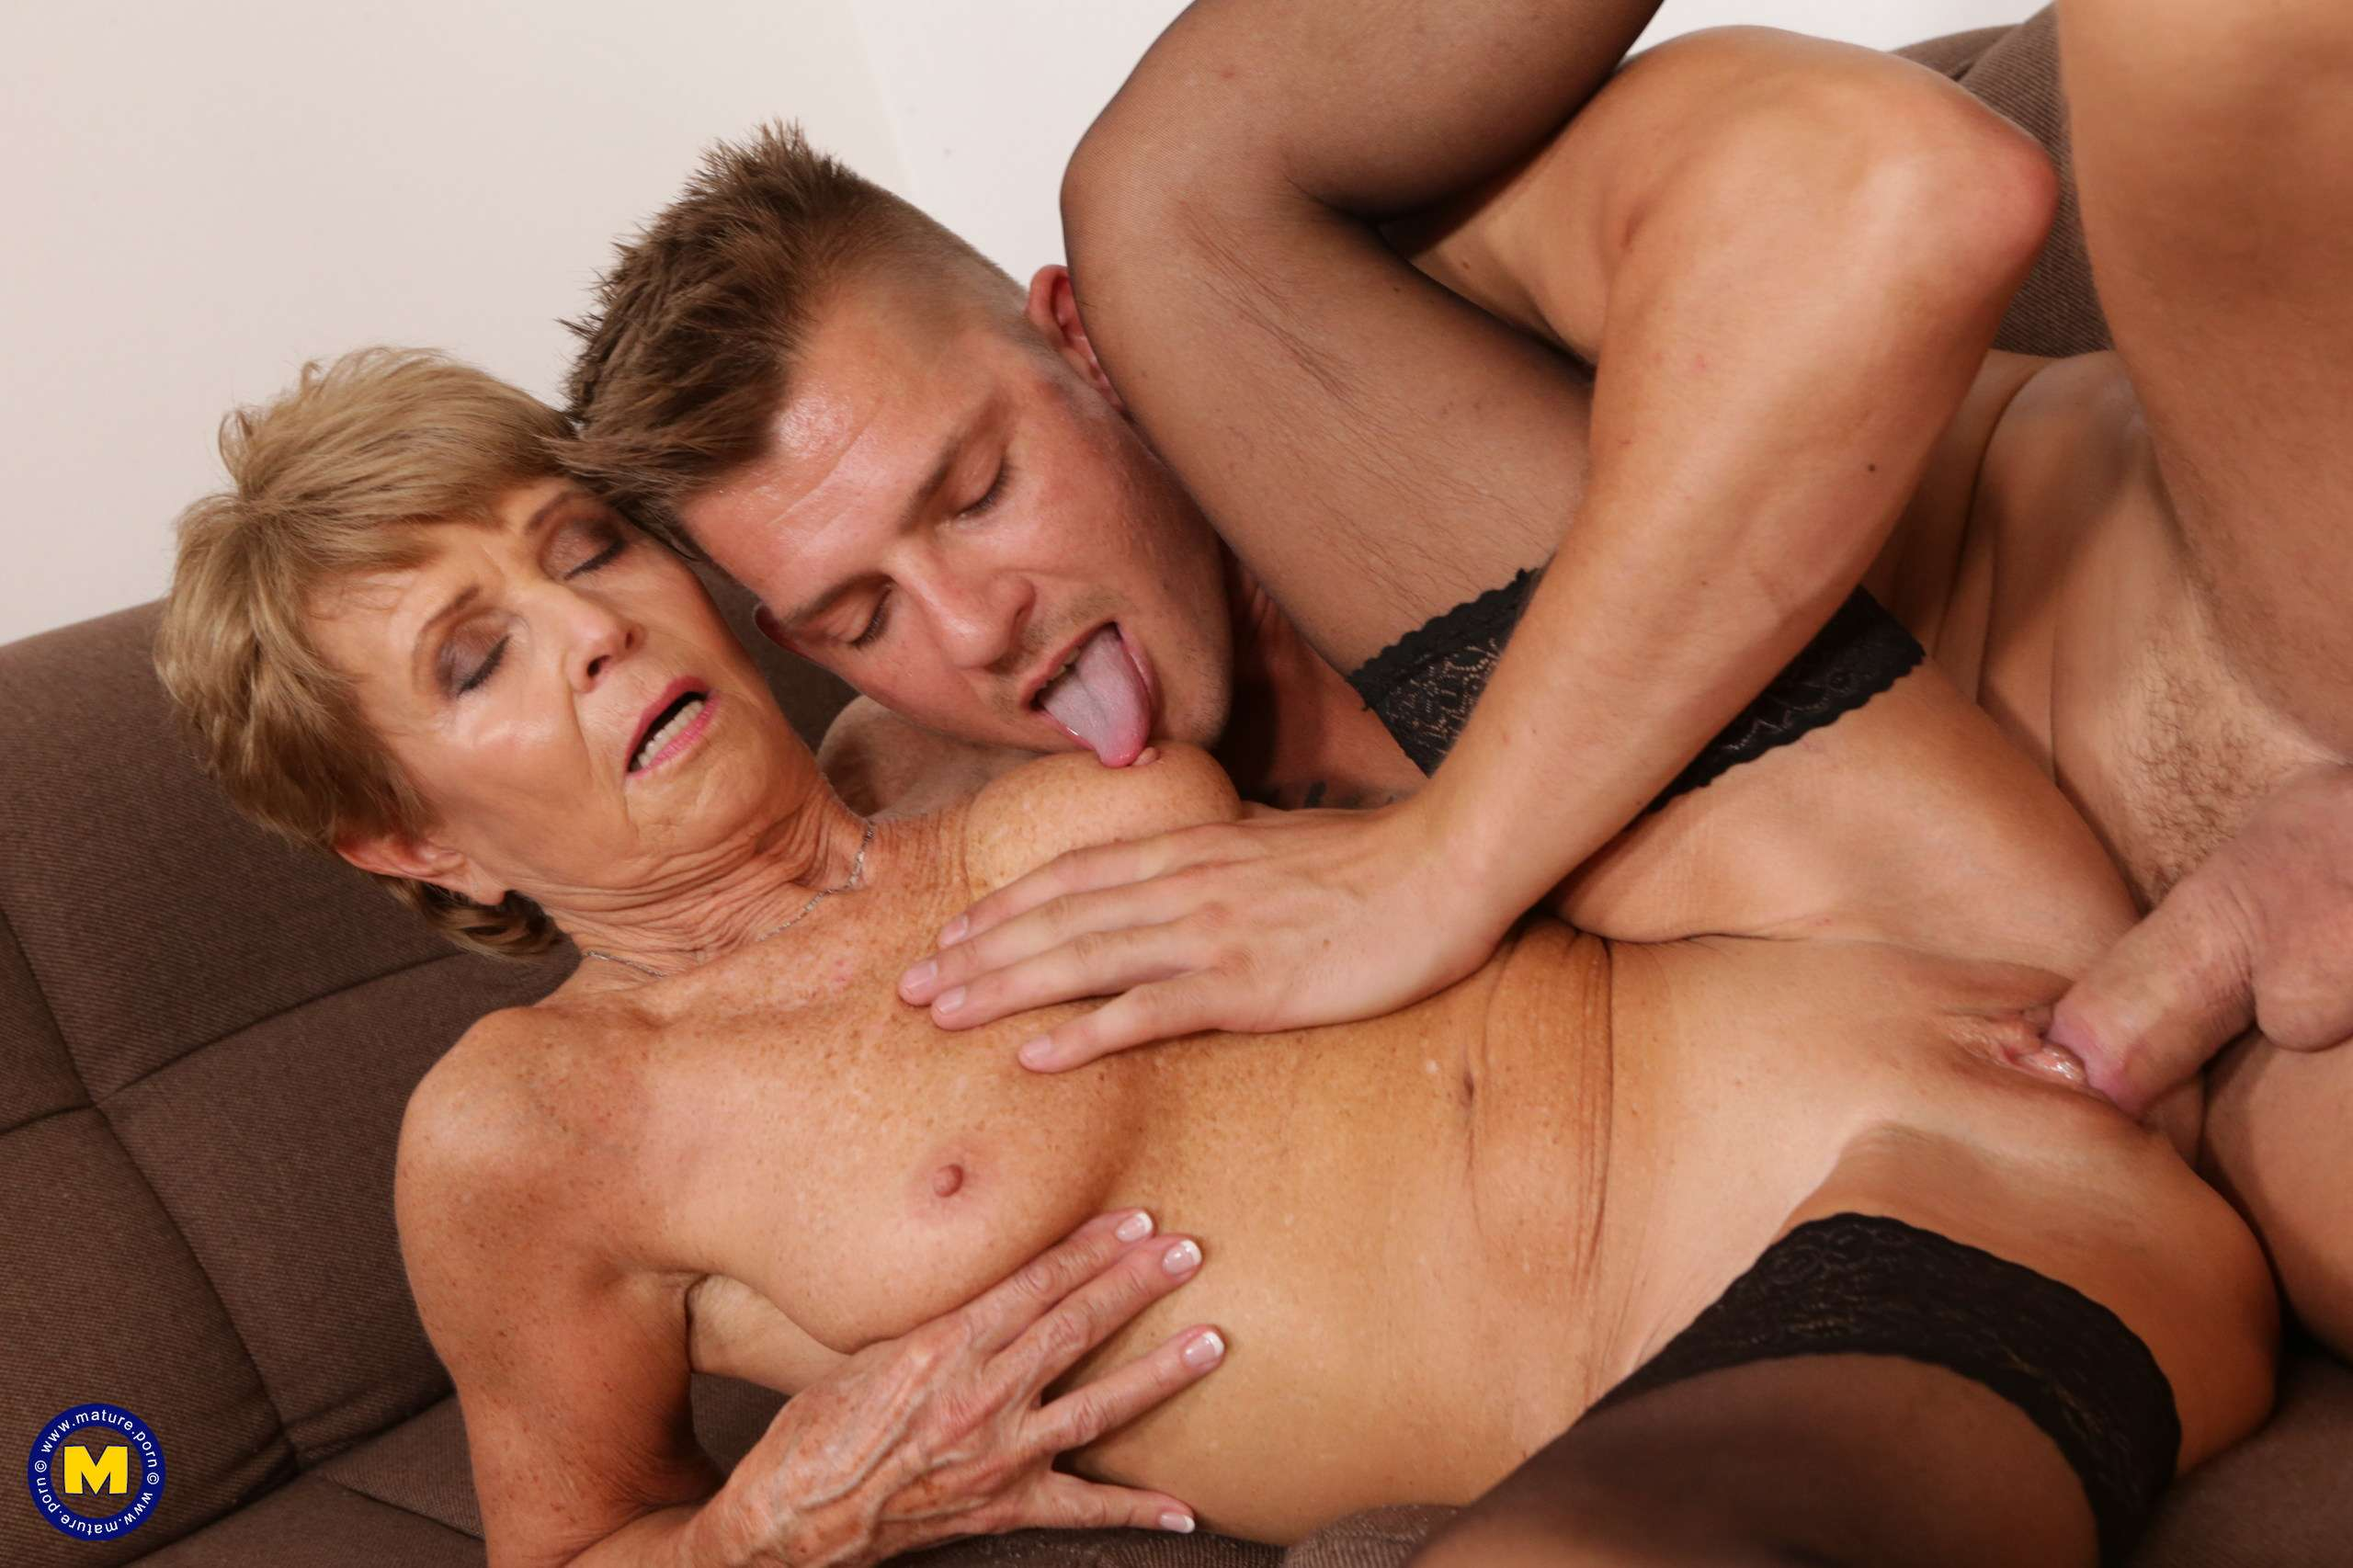 This naughty granny loves to get fucked by her toyboy